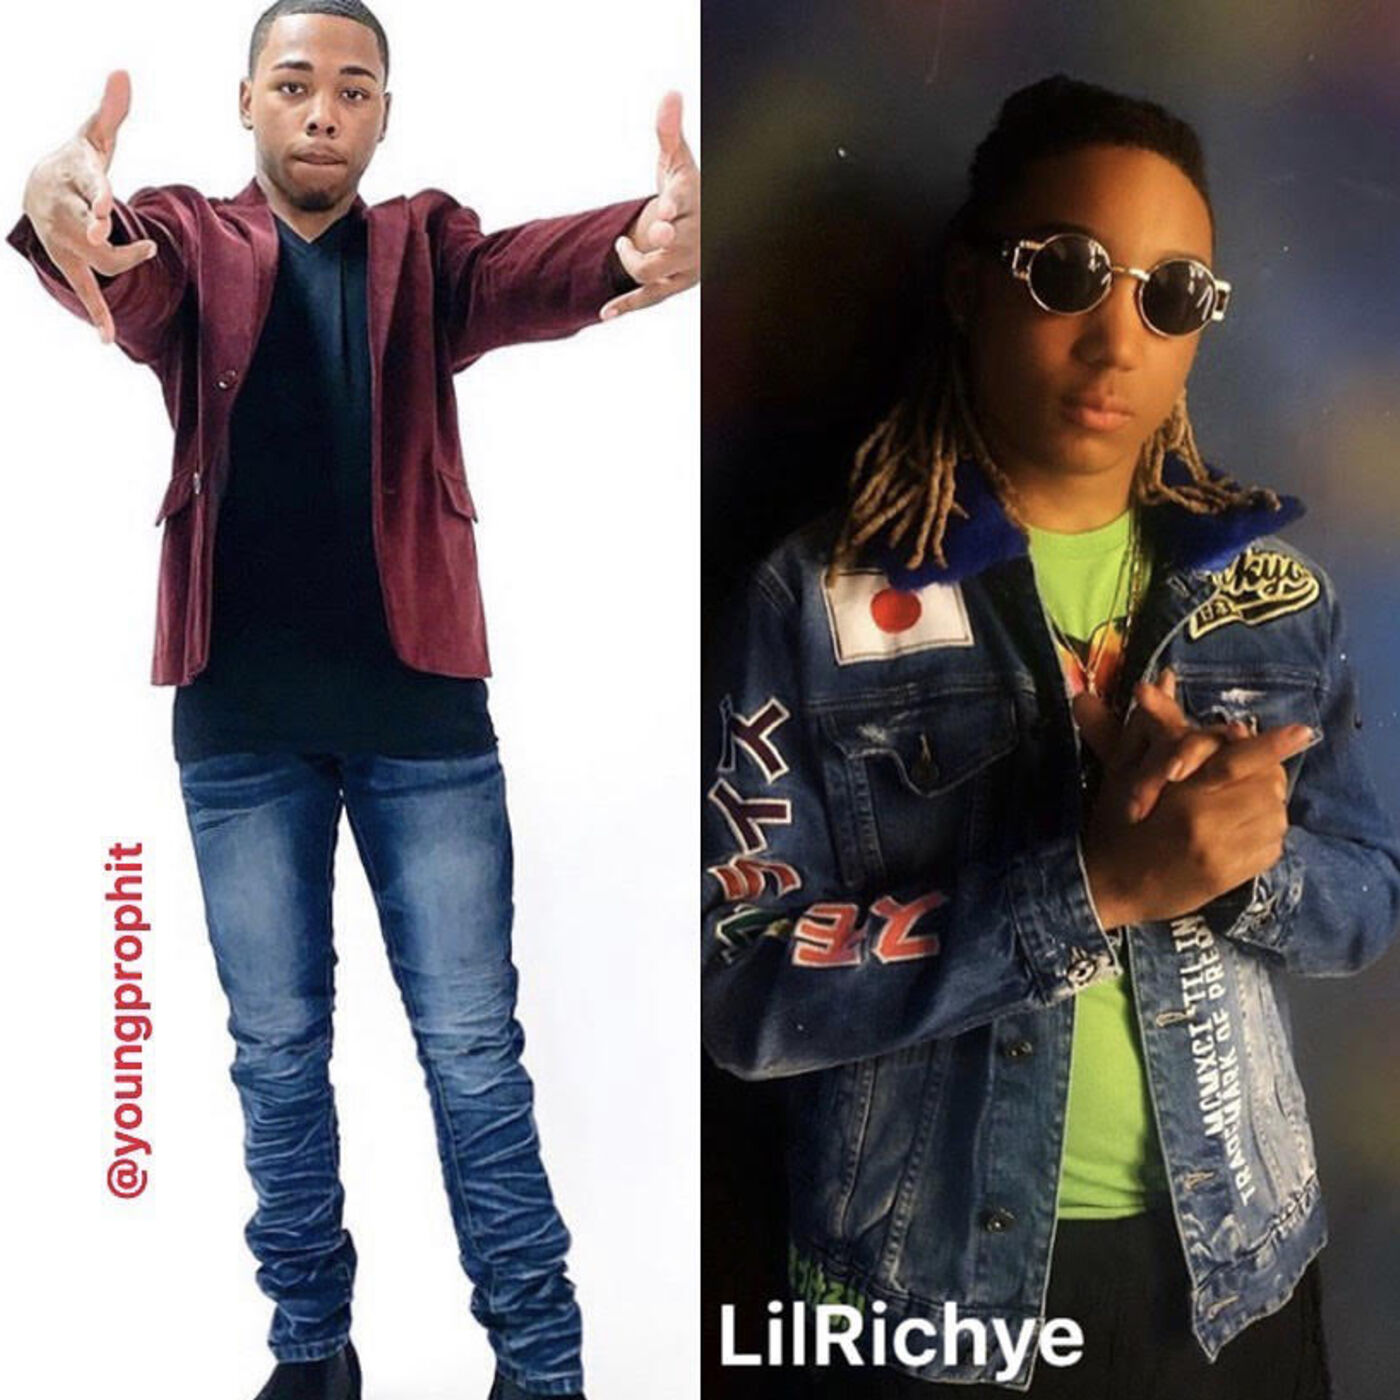 NoAdvisory EXCLUSIVE Interview w/ Lil Richye and Young Prophit